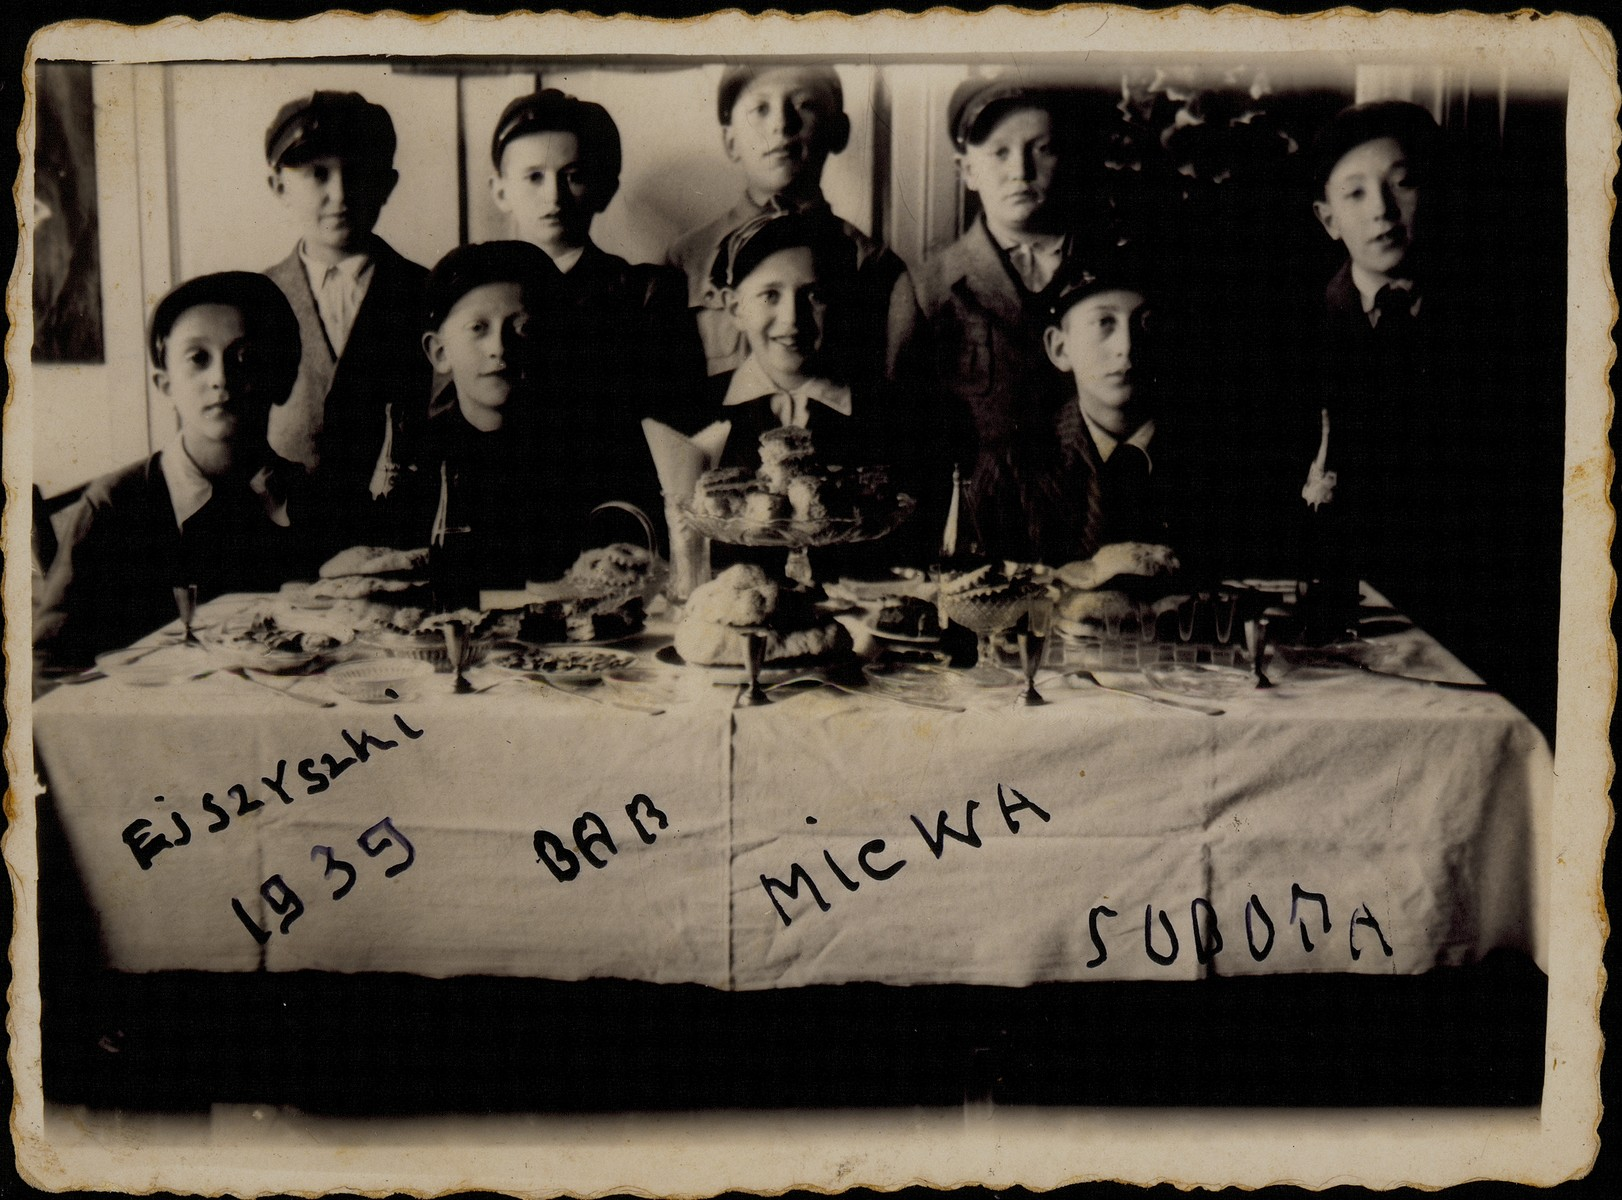 Group portrait of Jewish children attending the Bar Mitzvah party of Avremele Botwinik in Eisiskes.  Among those pictured are Avremele Botwinik (seated behind the cake), Moshe Bastunski (seated second from the left), Avigdor Katz (seated on the right), Moshe Kaplan (standing second from the right), Elisha Koppelman (standing second from the left).  Only the Bar Mitzvah boy survived the war (as a partisan).  Elisha Koppelman was killed by members of the Polish Home Army.  The others were killed by the Germans during the September 1941 mass shooting action in Eisiskes.